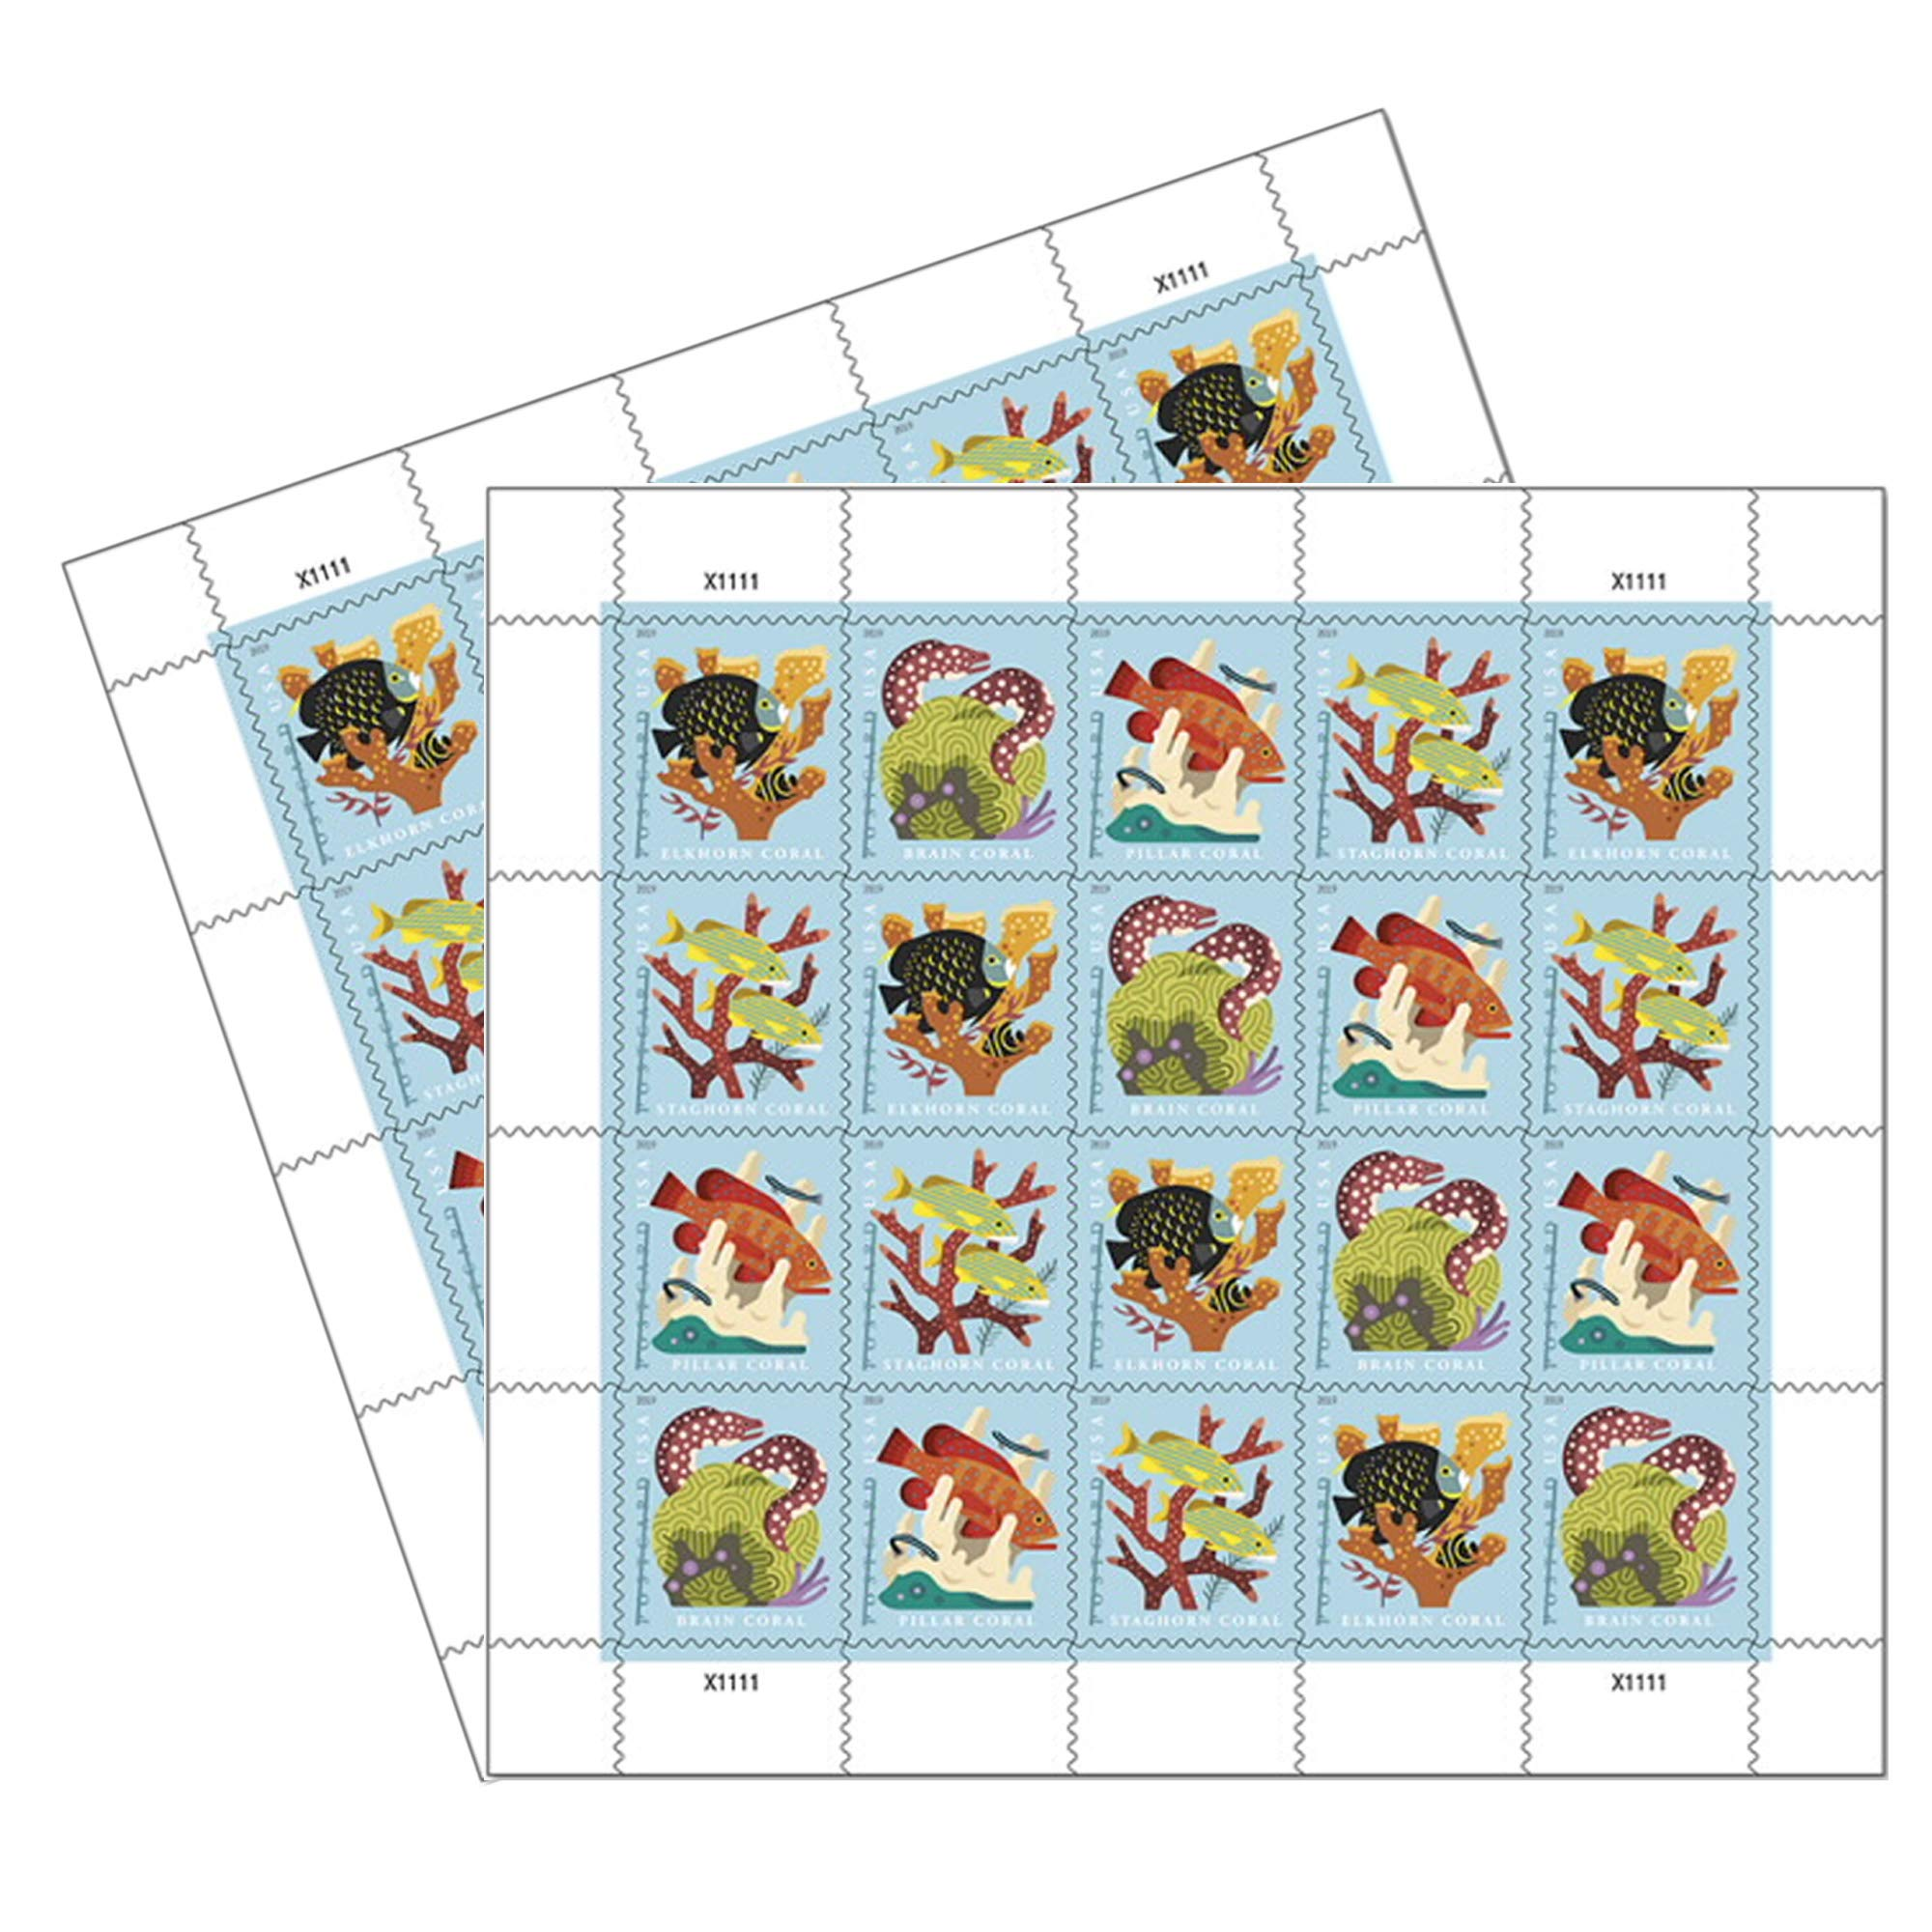 Coral Reefs Postcard 2 Sheets of 20 US First Class Forever POSTCARD Postage Stamps Sea (40 Stamps)